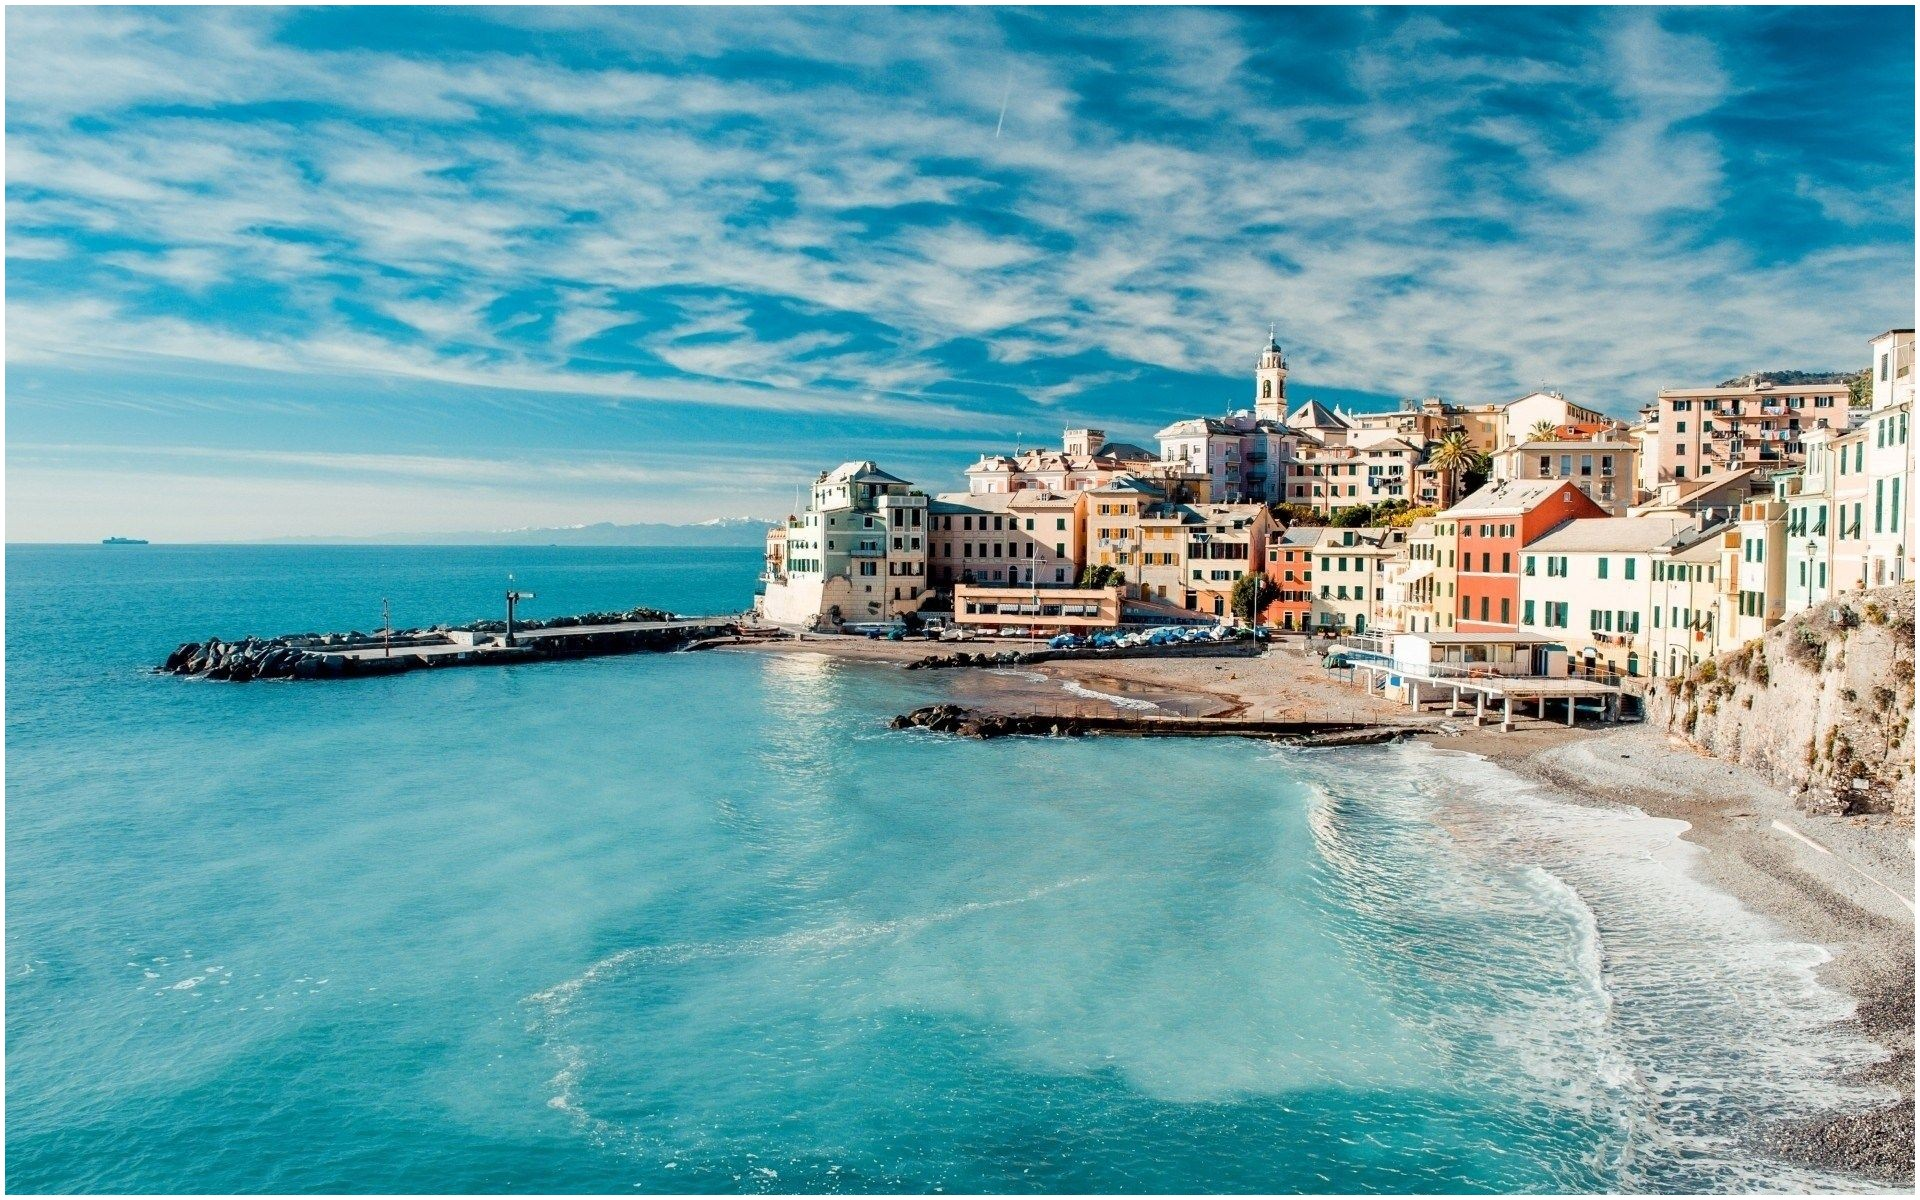 Genoa Italy Beach Resorts Turquoise Water Wide HD Wallpaper